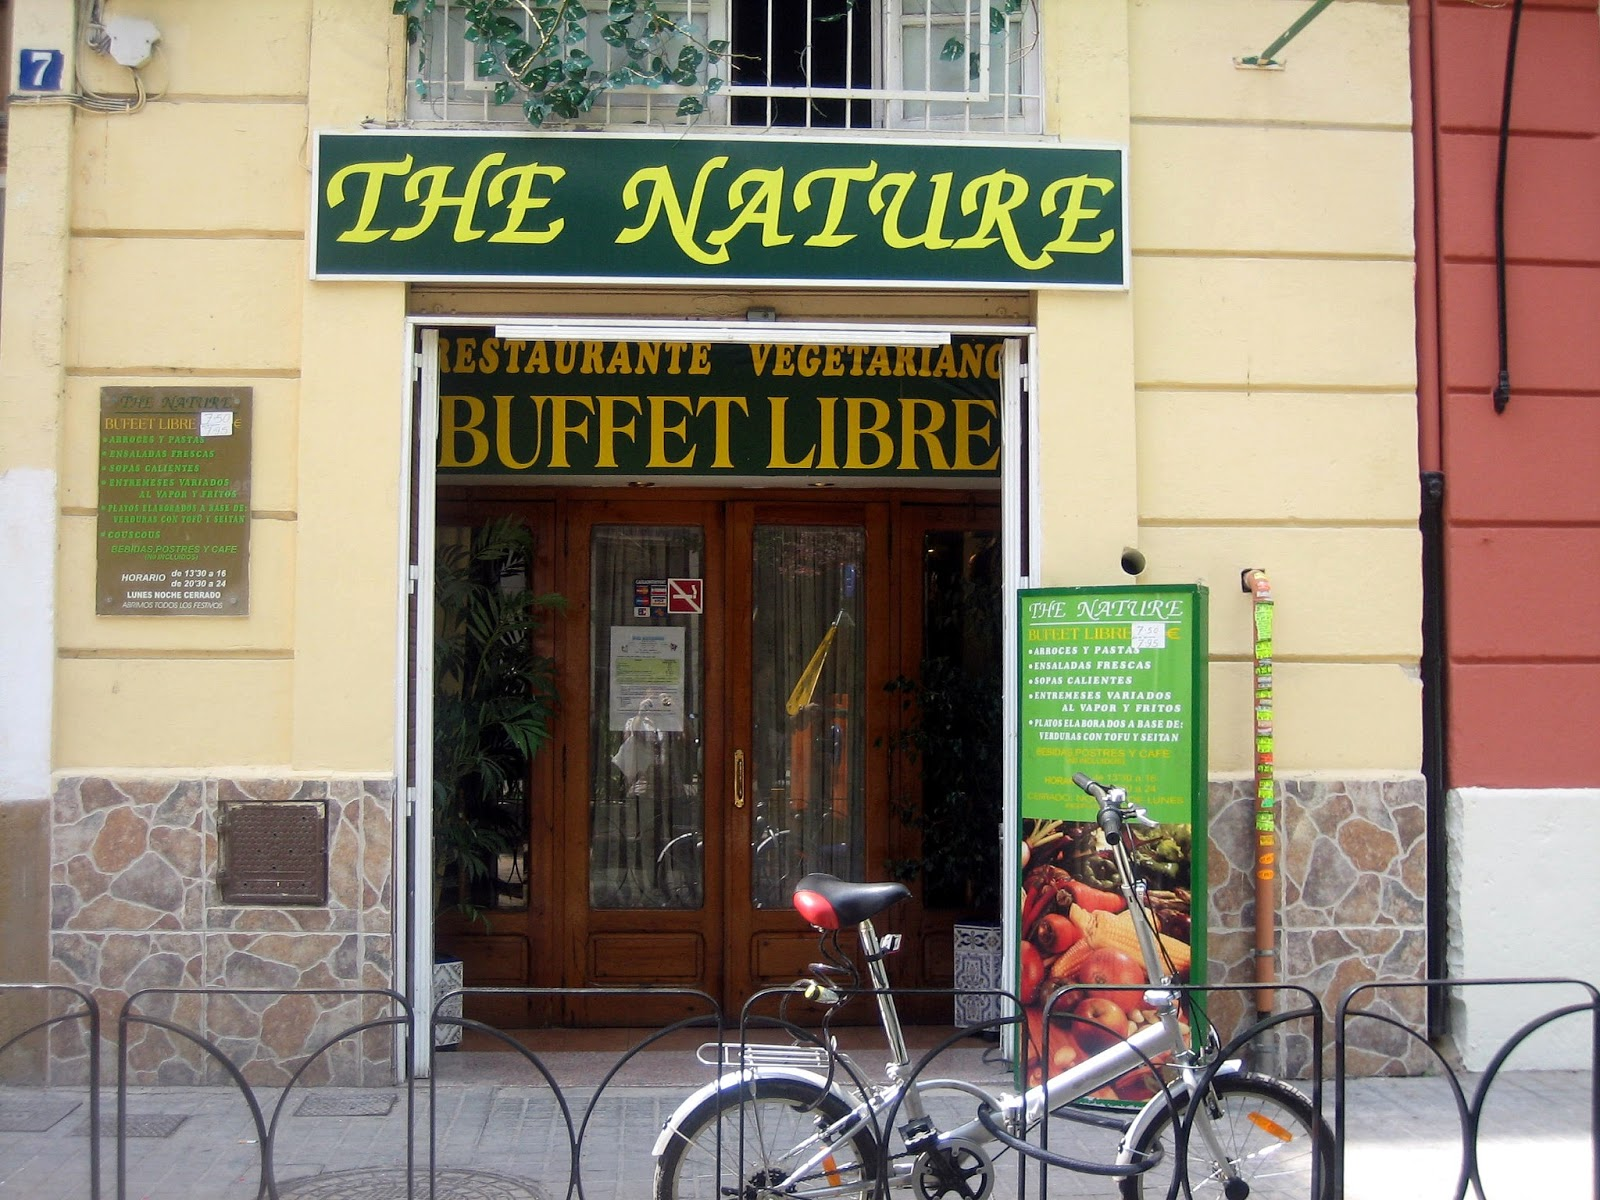 Buffet Libre Granada Barato The Nature Buffet Libre Vegetariano Valencia